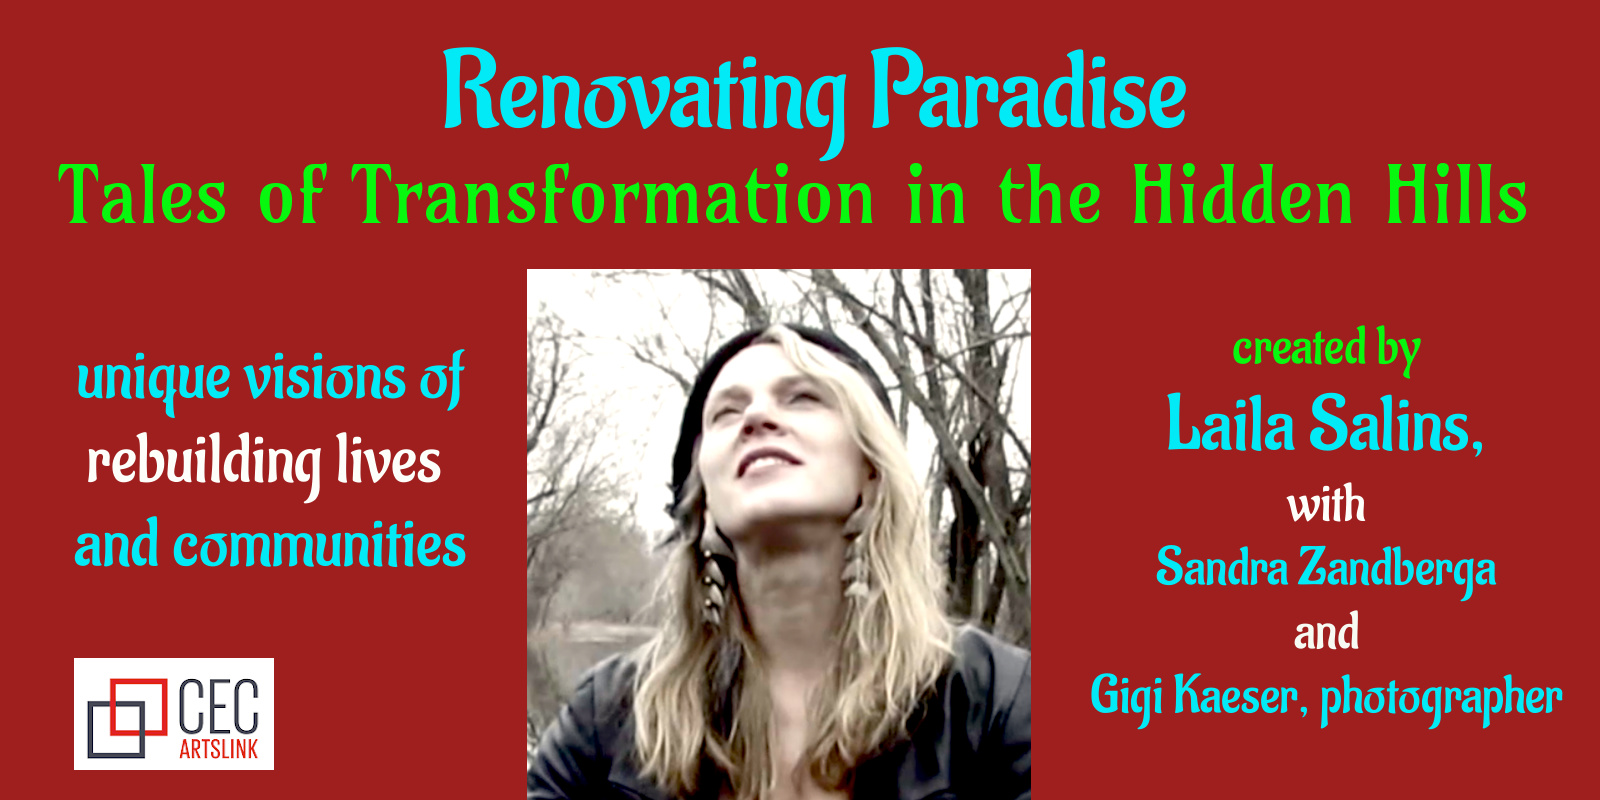 Renovating Paradise: Tales of Transformation in the Hidden Hills of Western Massachusetts